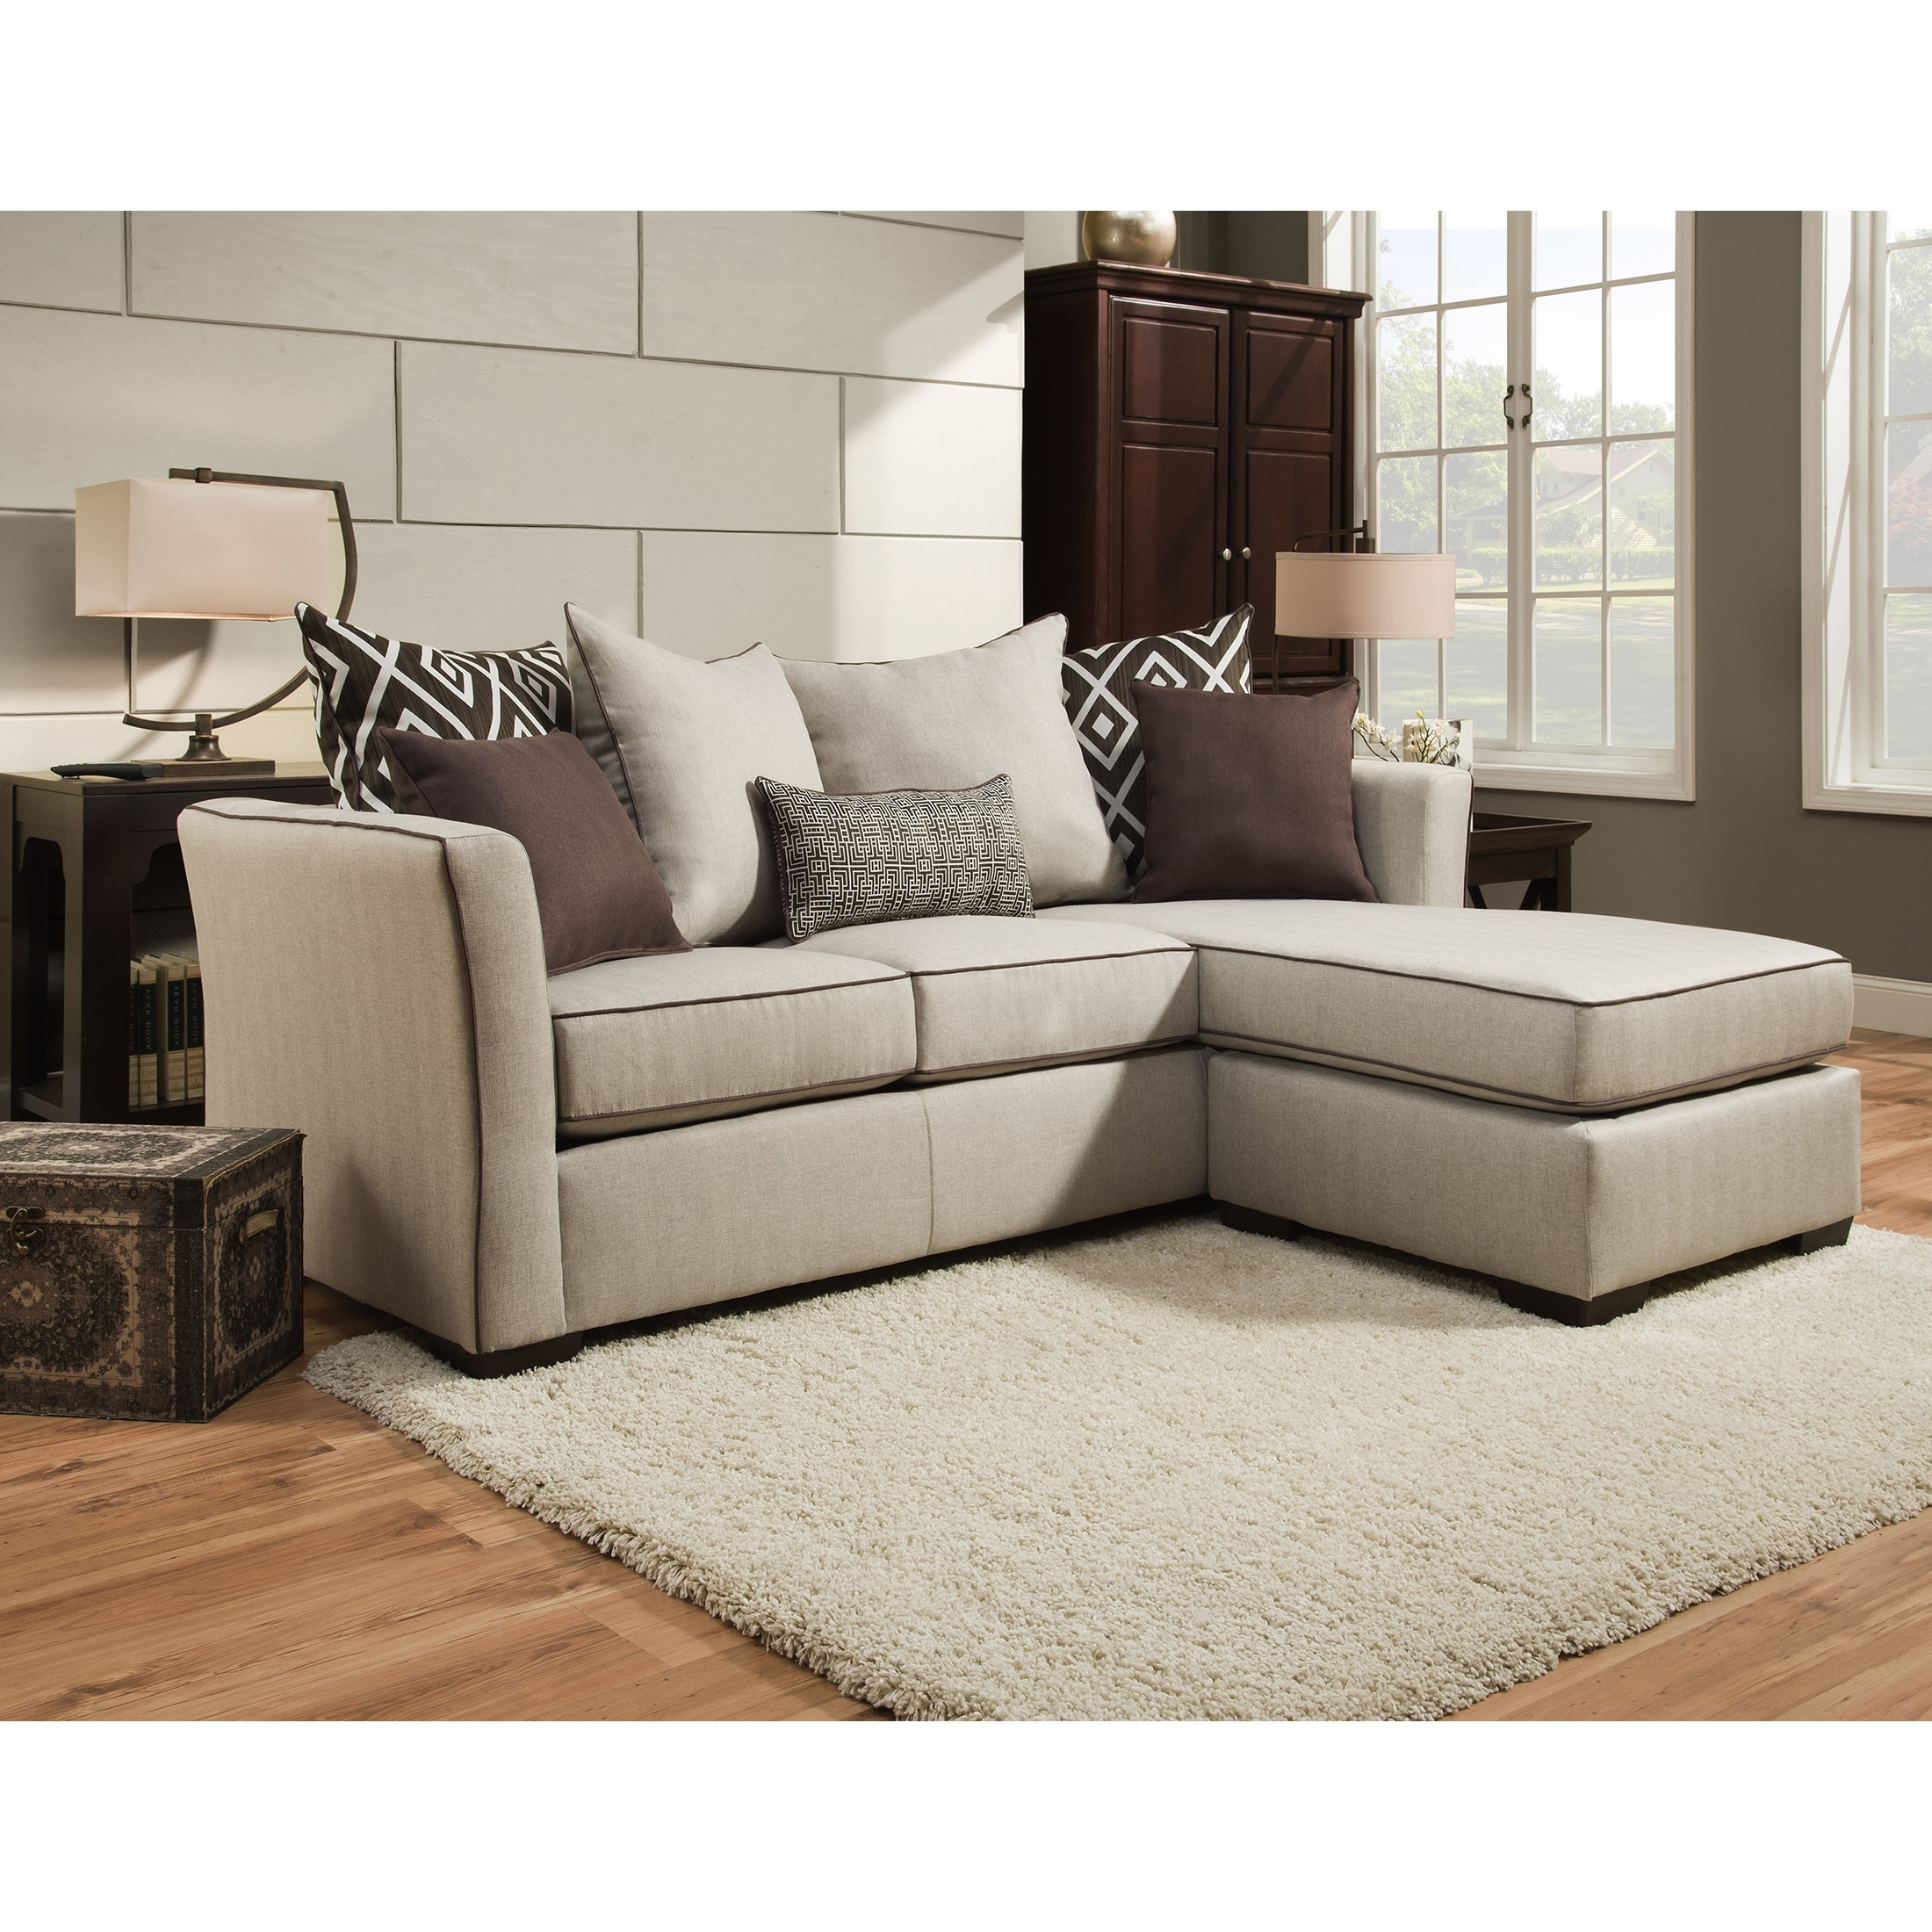 Popular Simmons Upholstery Stewart Sofa Chaise – Free Shipping Today In Simmons Chaise Sofas (View 4 of 20)